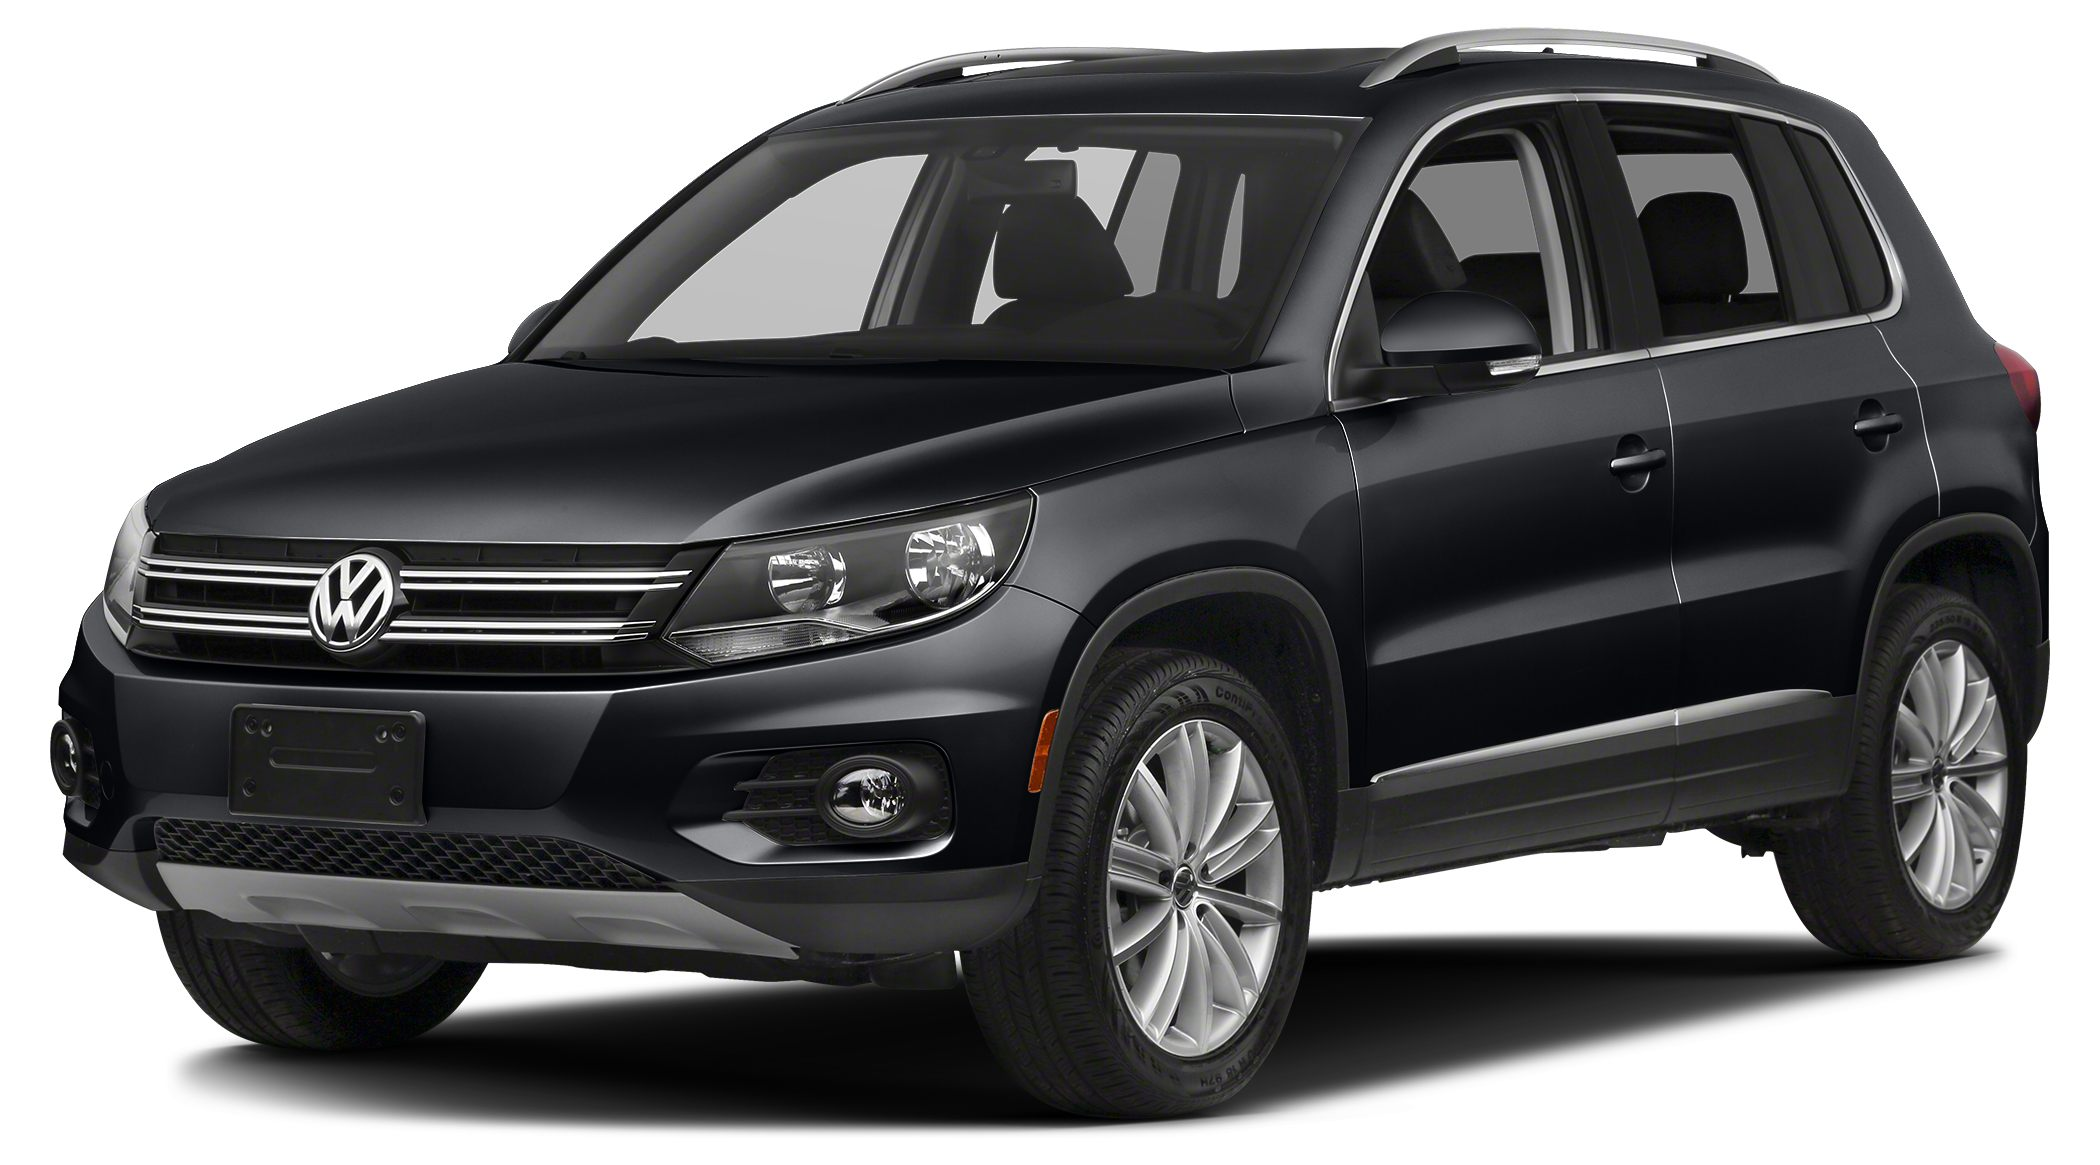 2012 Volkswagen Tiguan SE LOW MILES SPORT EDITION HEATED SEATS BLUETOOTH HEATED MIRRORS IMMAC